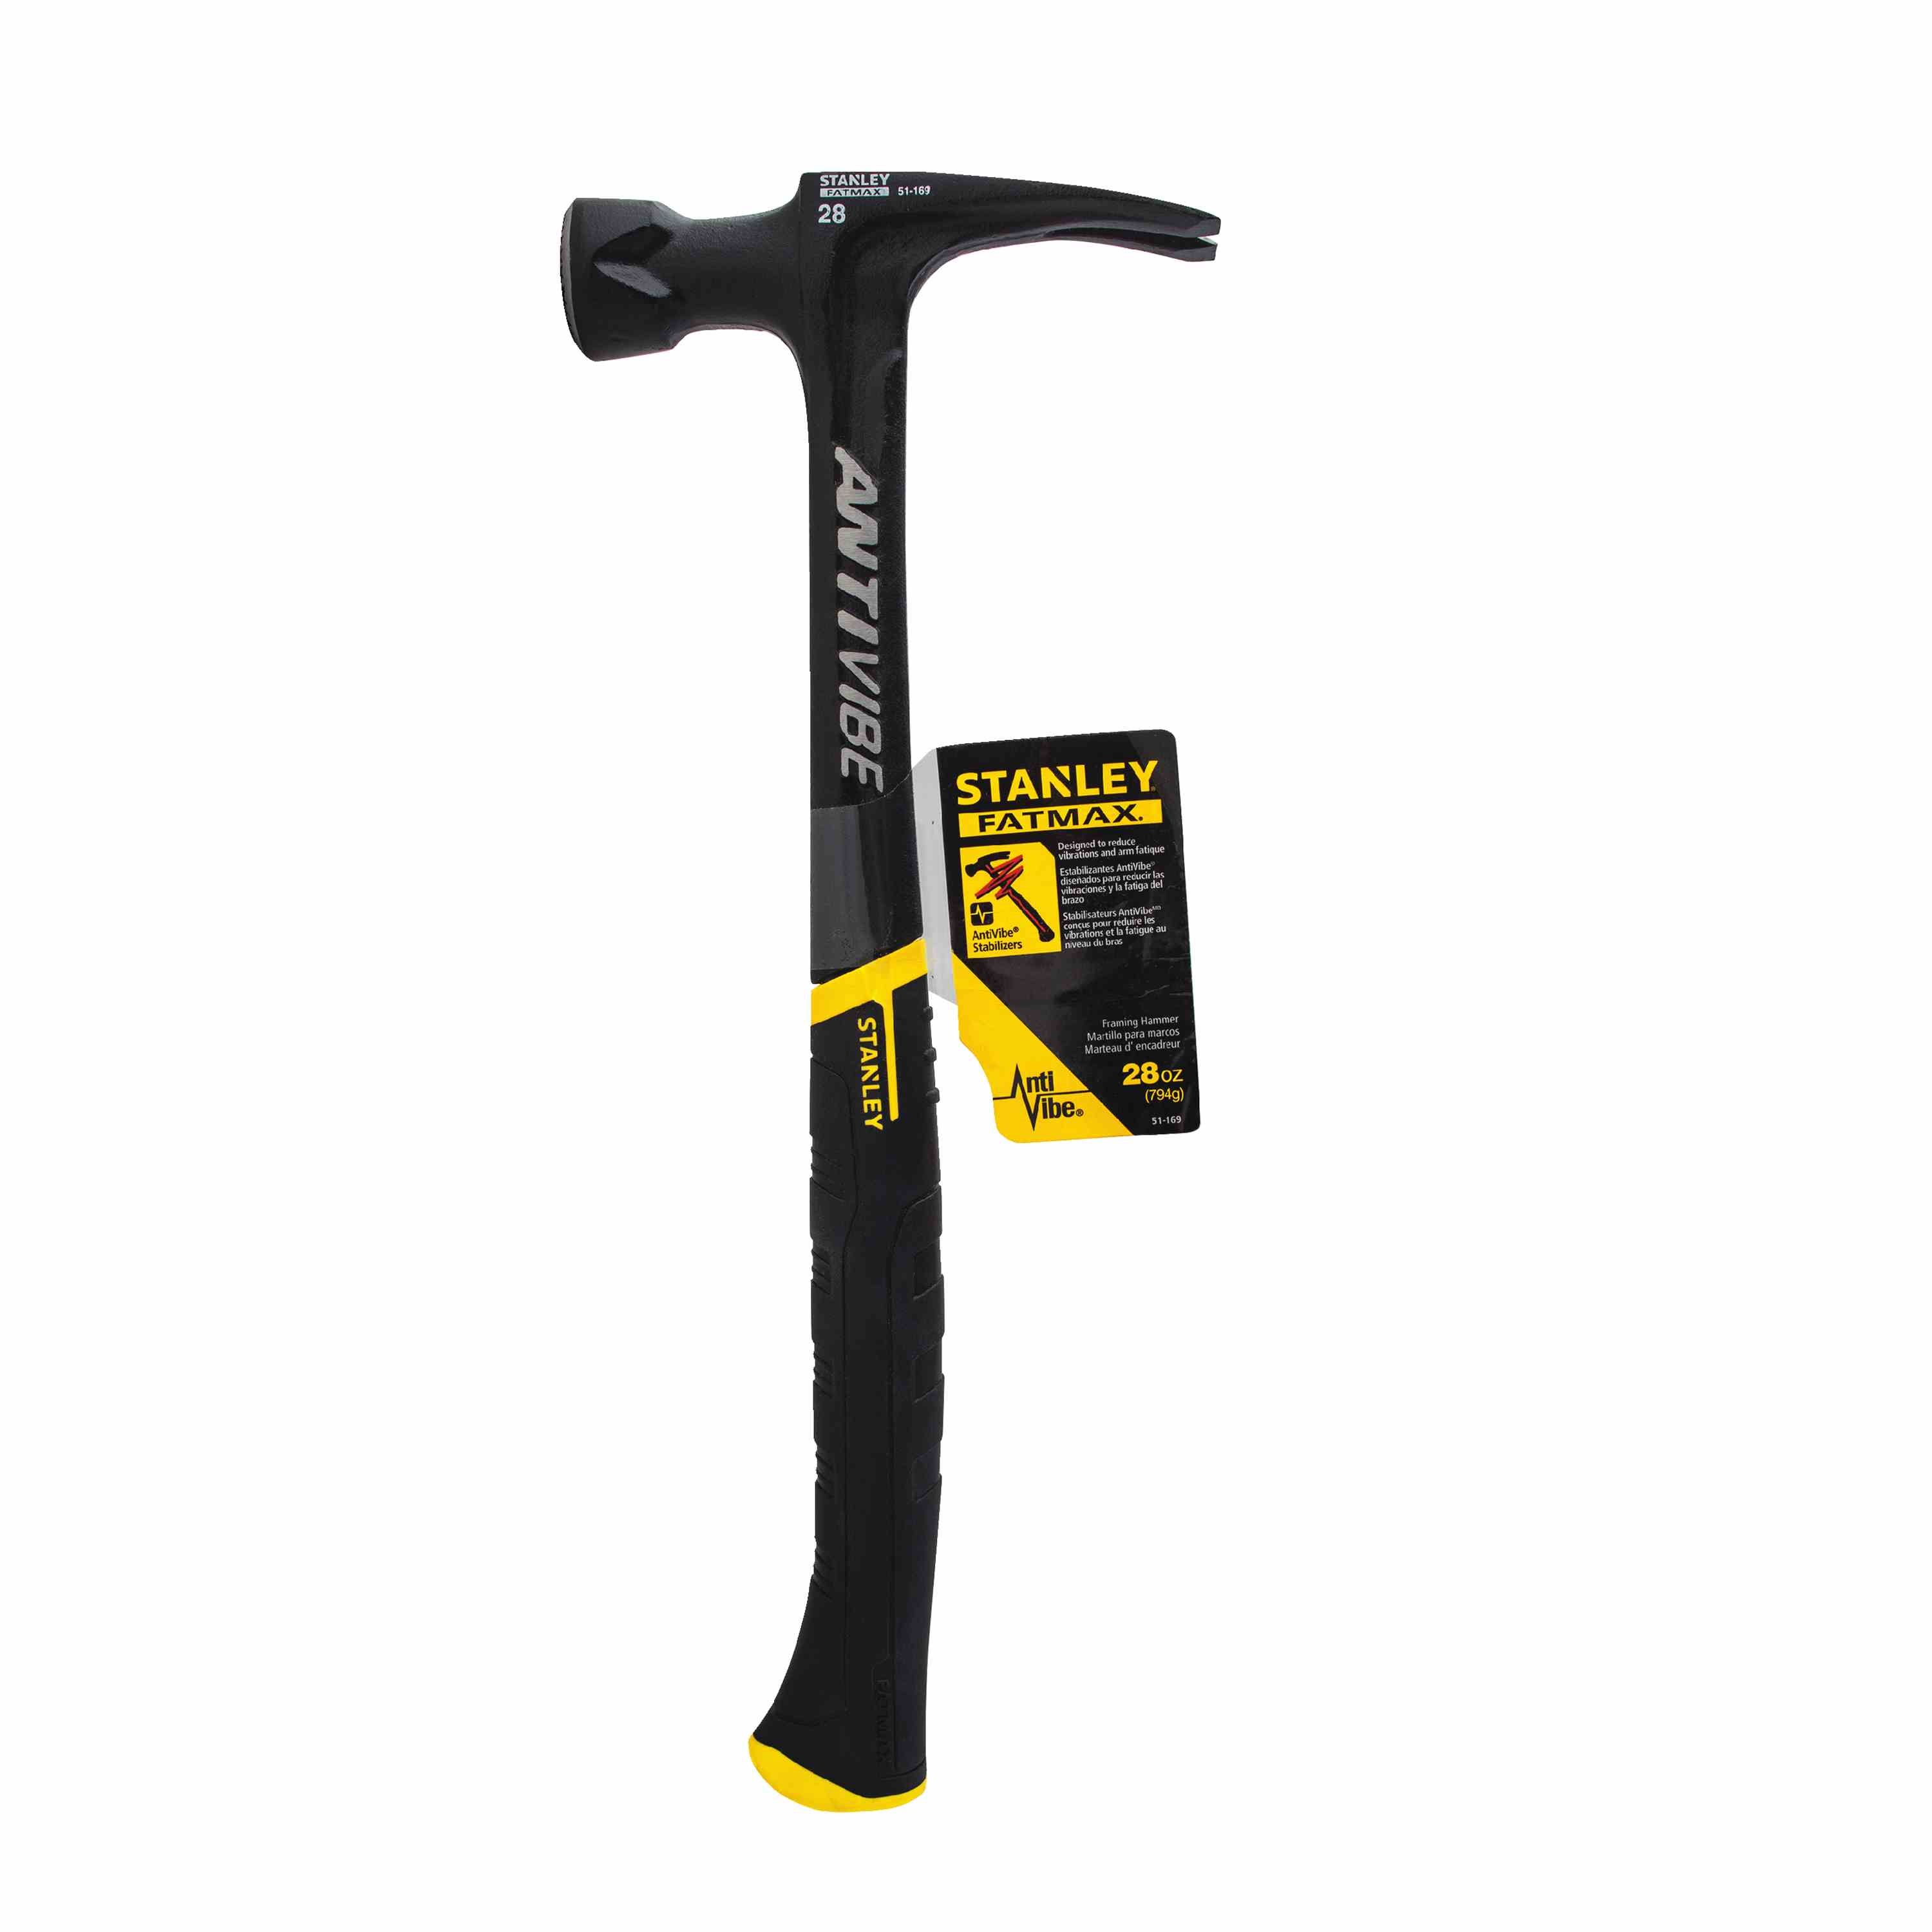 Stanley Tools - 28 oz FATMAX AntiVibe Rip Claw Framing Hammer - 51-169